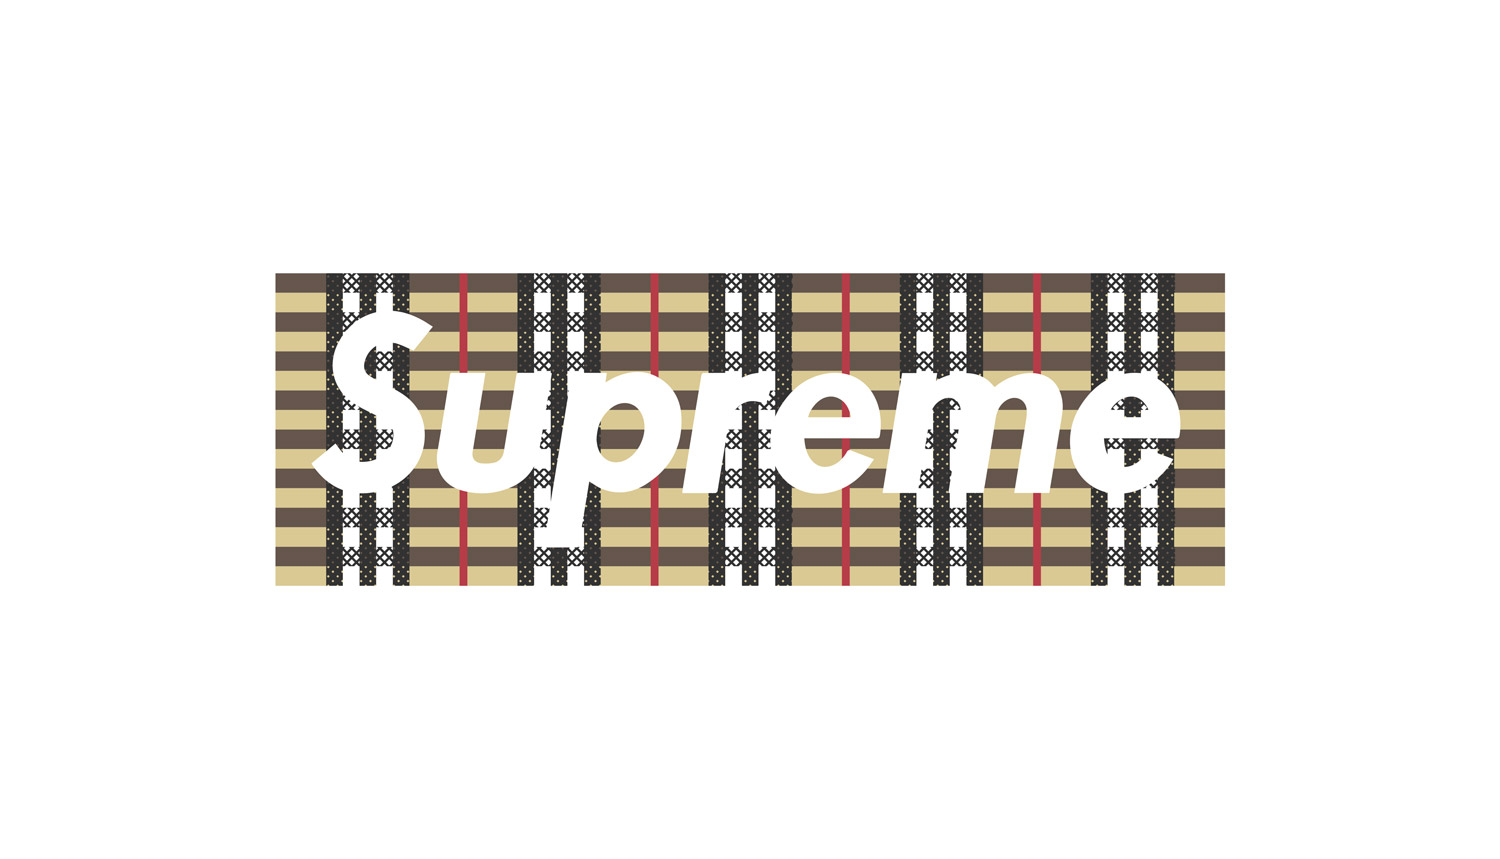 The Most Obscure Supreme Box Logo Tees Highsnobiety - Fake invoice maker burberry outlet online store